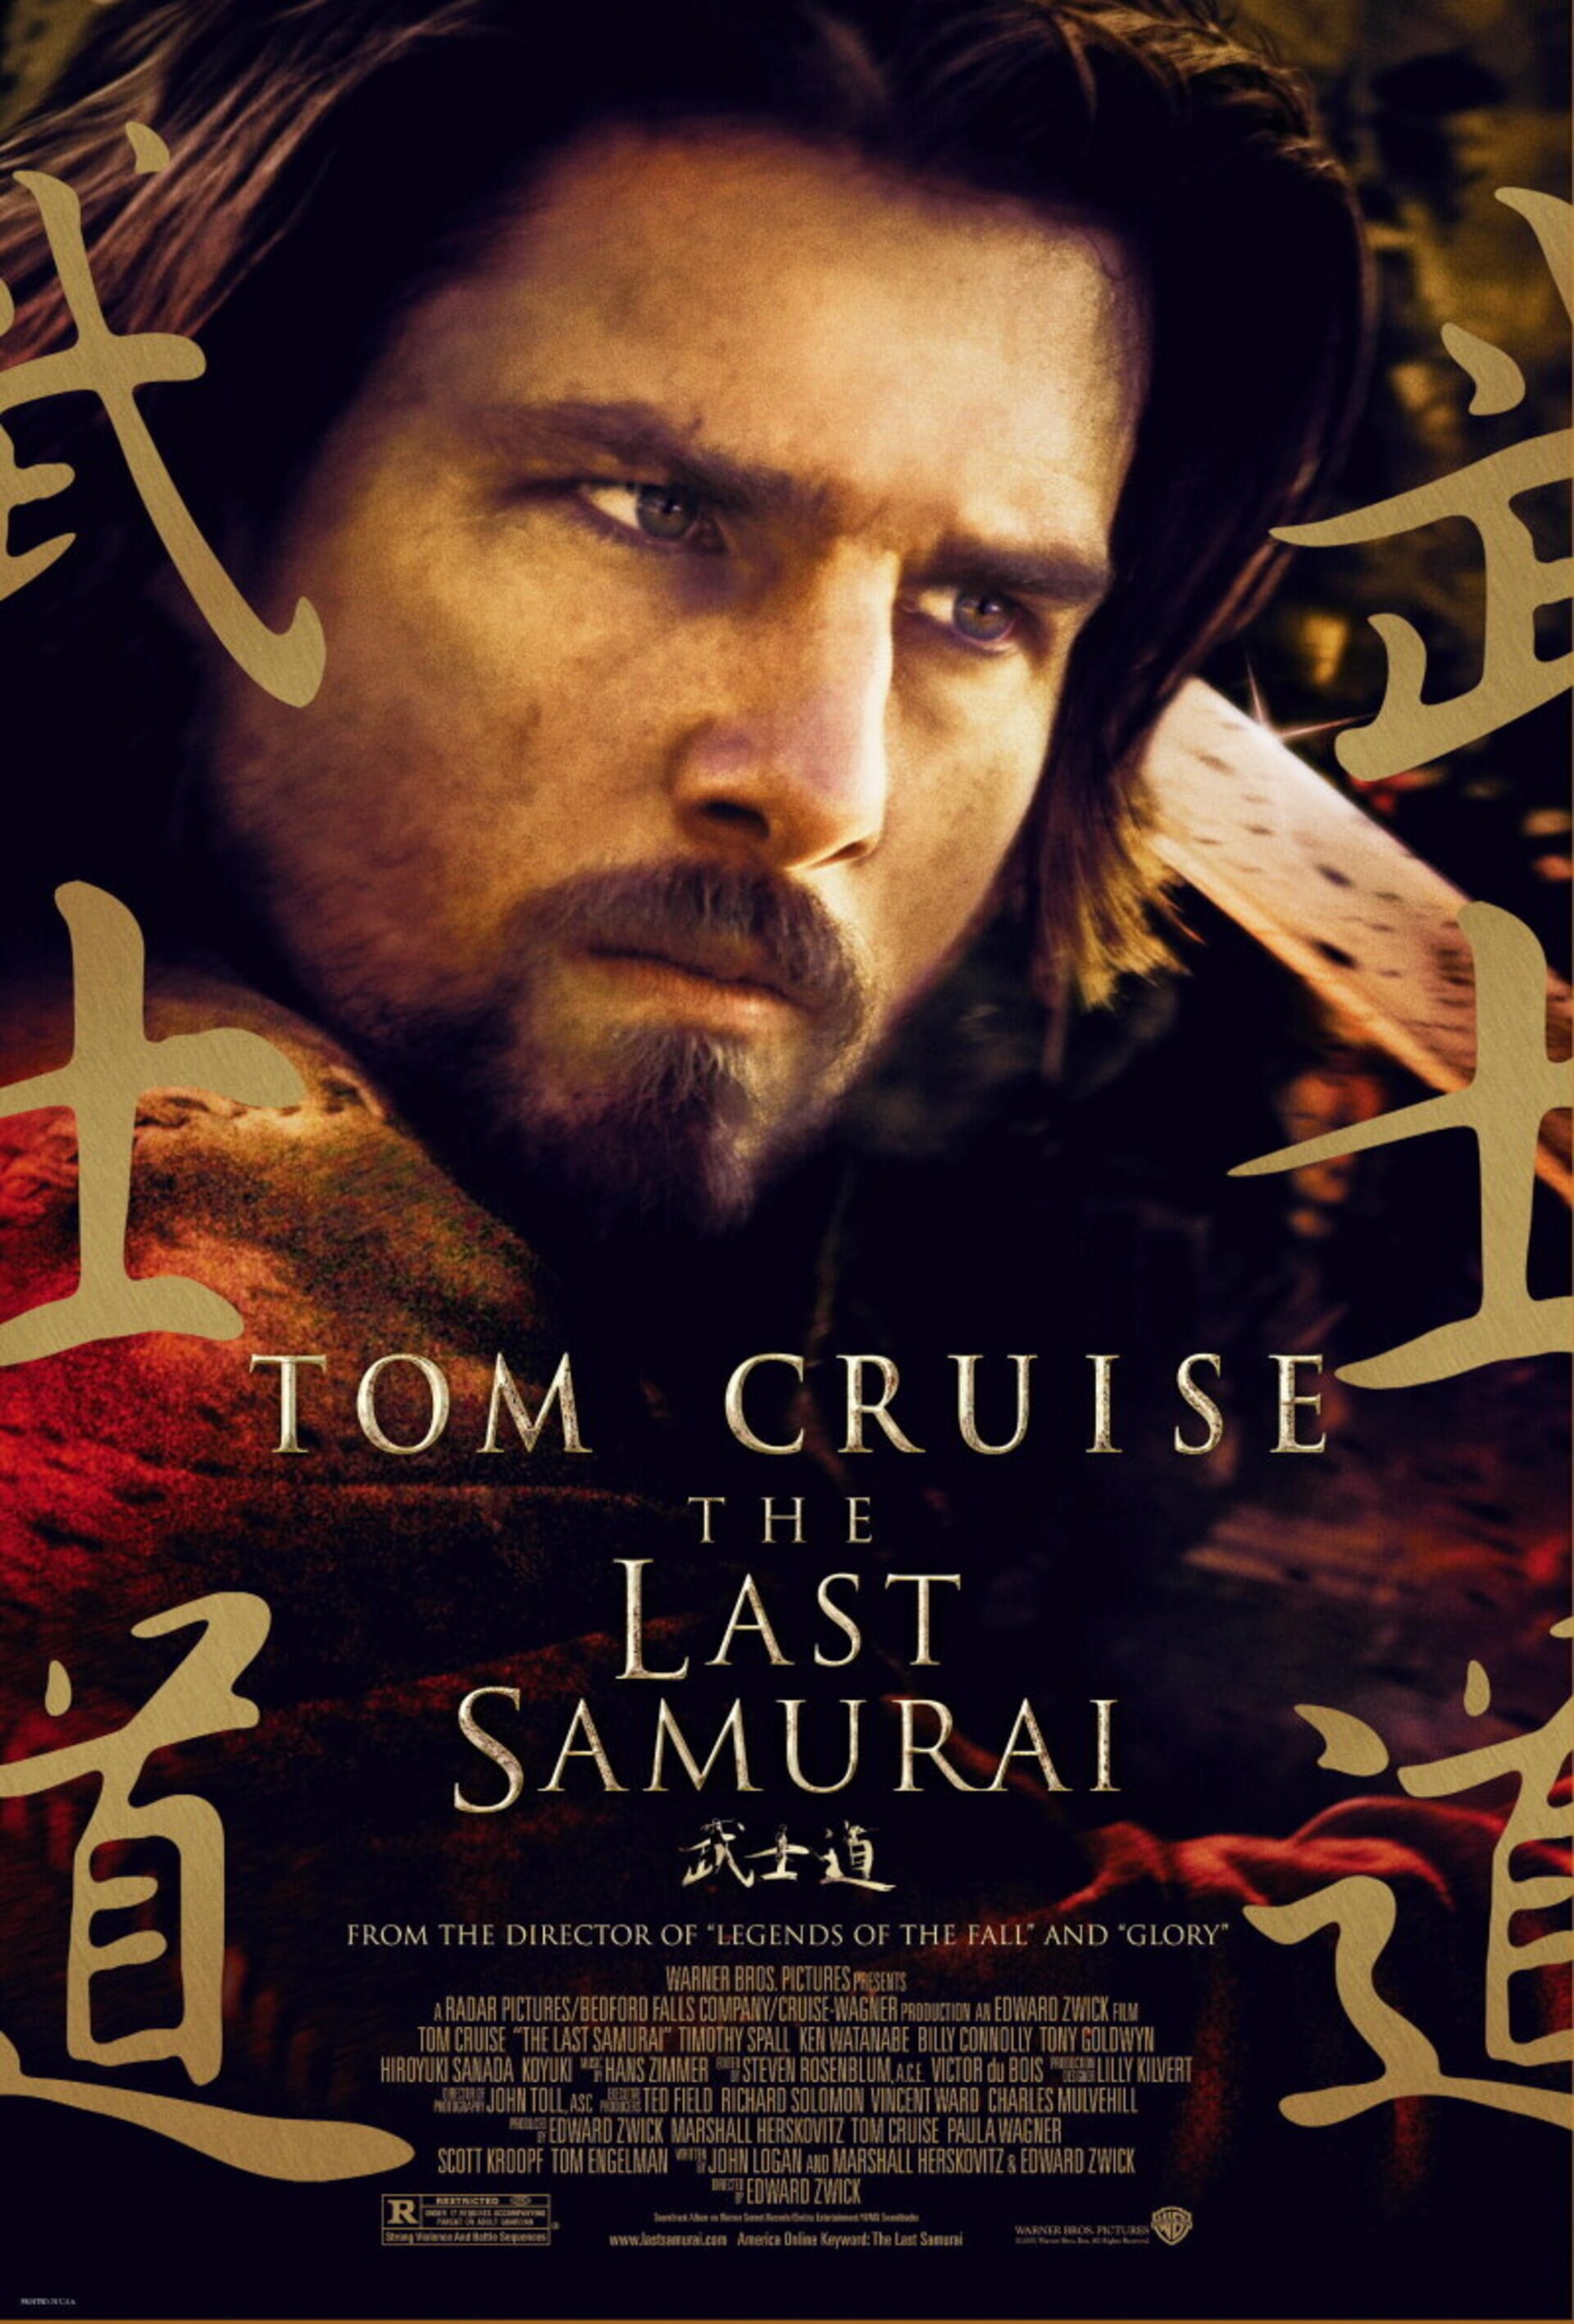 The Last Samurai - Poster 1